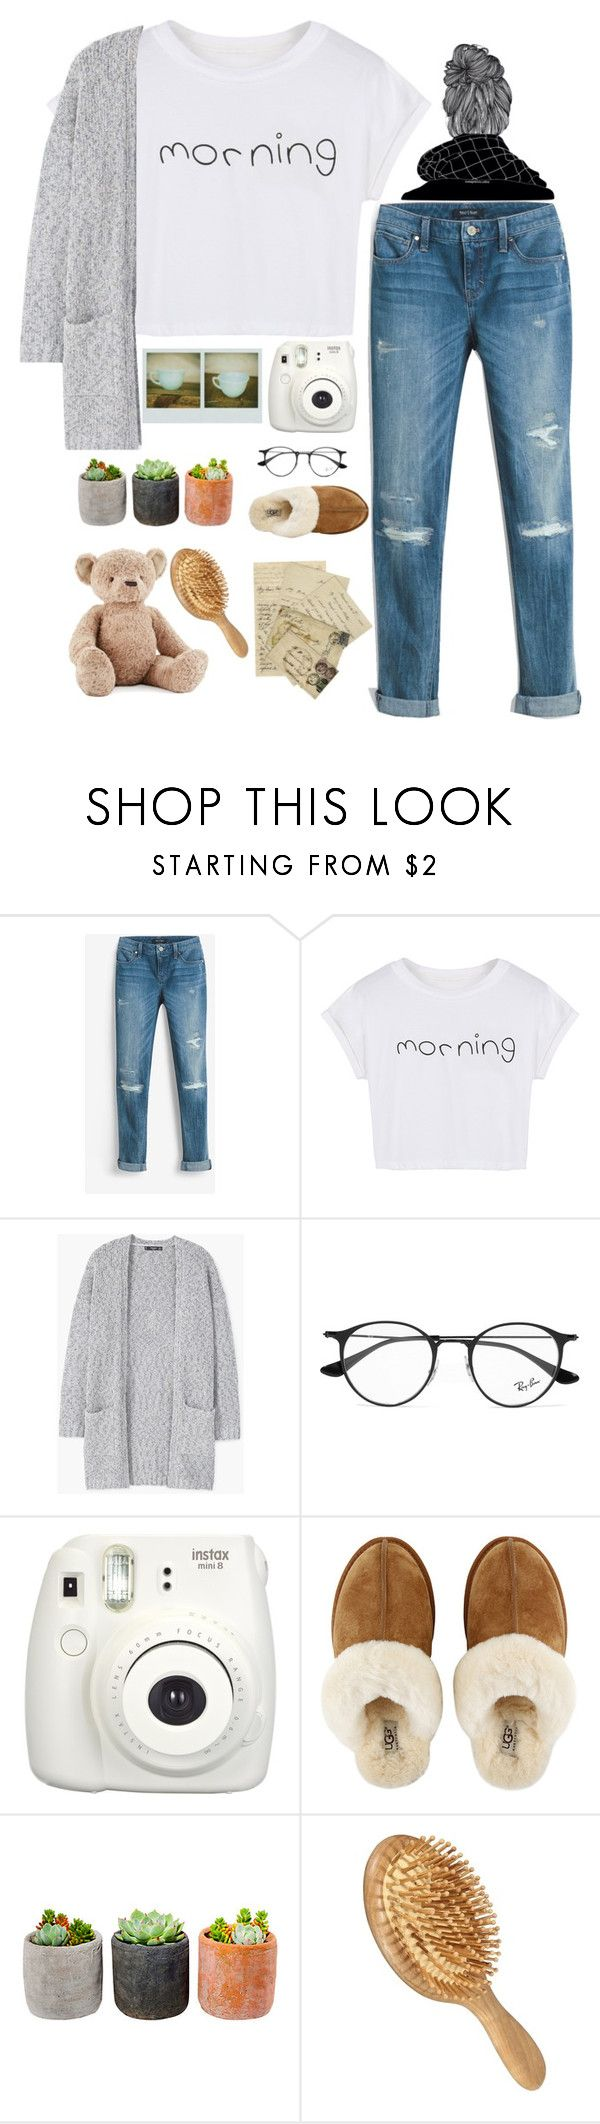 """""""Lazy morning"""" by grantaire1832 ❤ liked on Polyvore featuring White House Black Market, WithChic, MANGO, Ray-Ban, Fujifilm, UGG, Shop Succulents and Jellycat"""